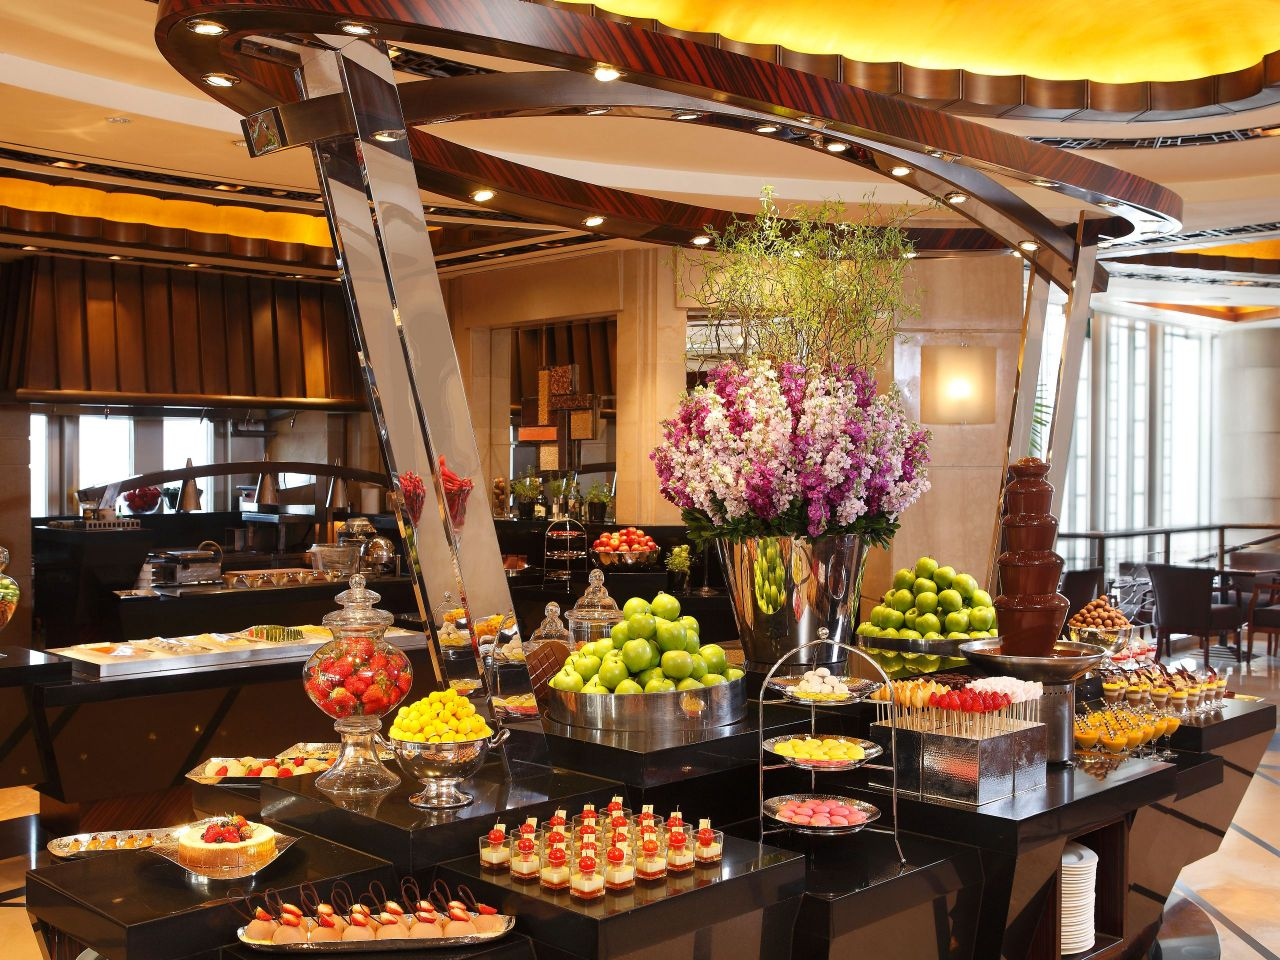 Hyatt Grand Shanghai buffet